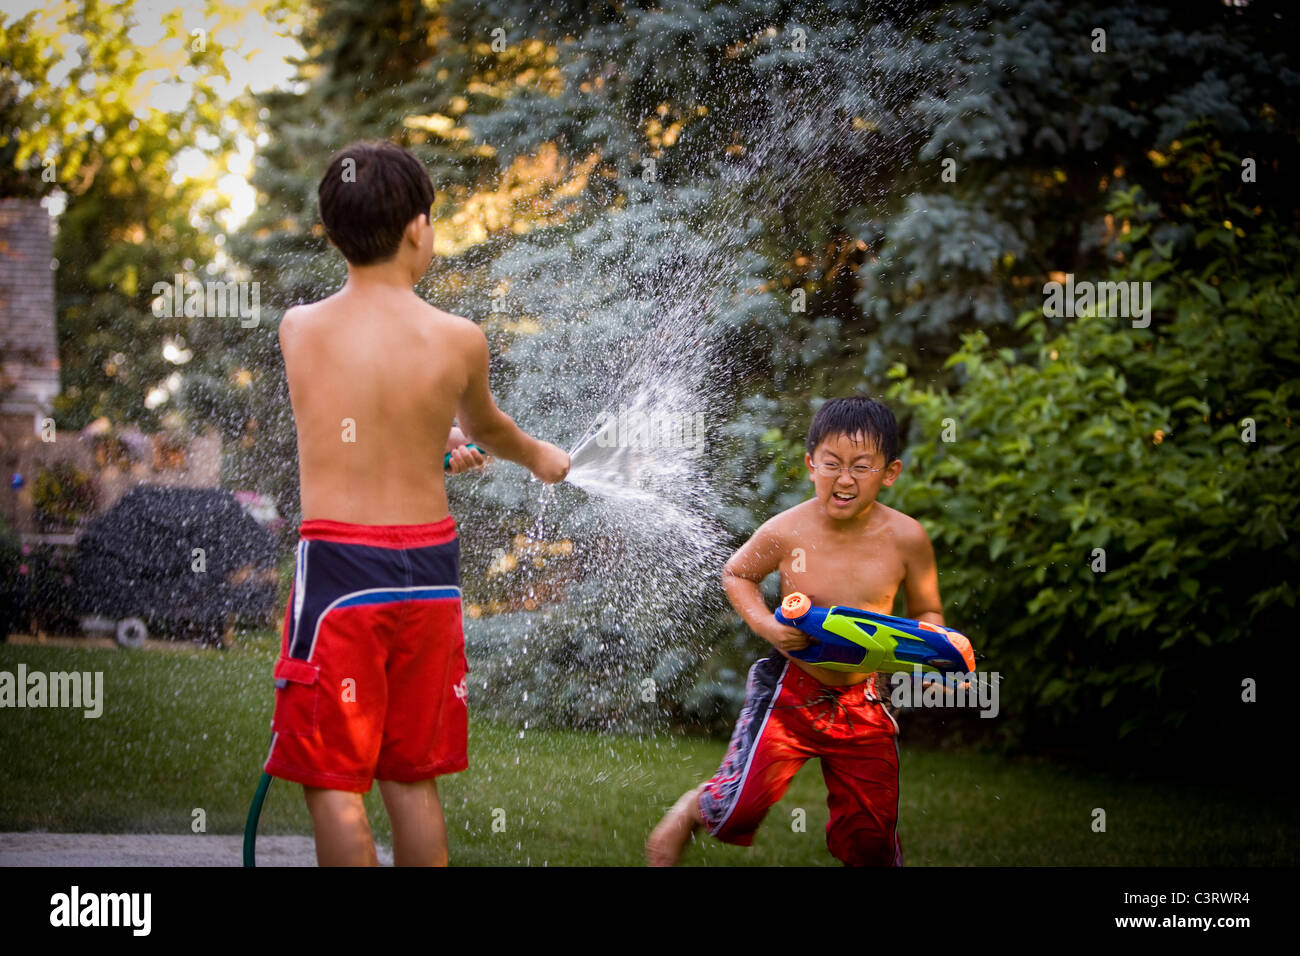 young boys having a water fight in the backyard stock photo